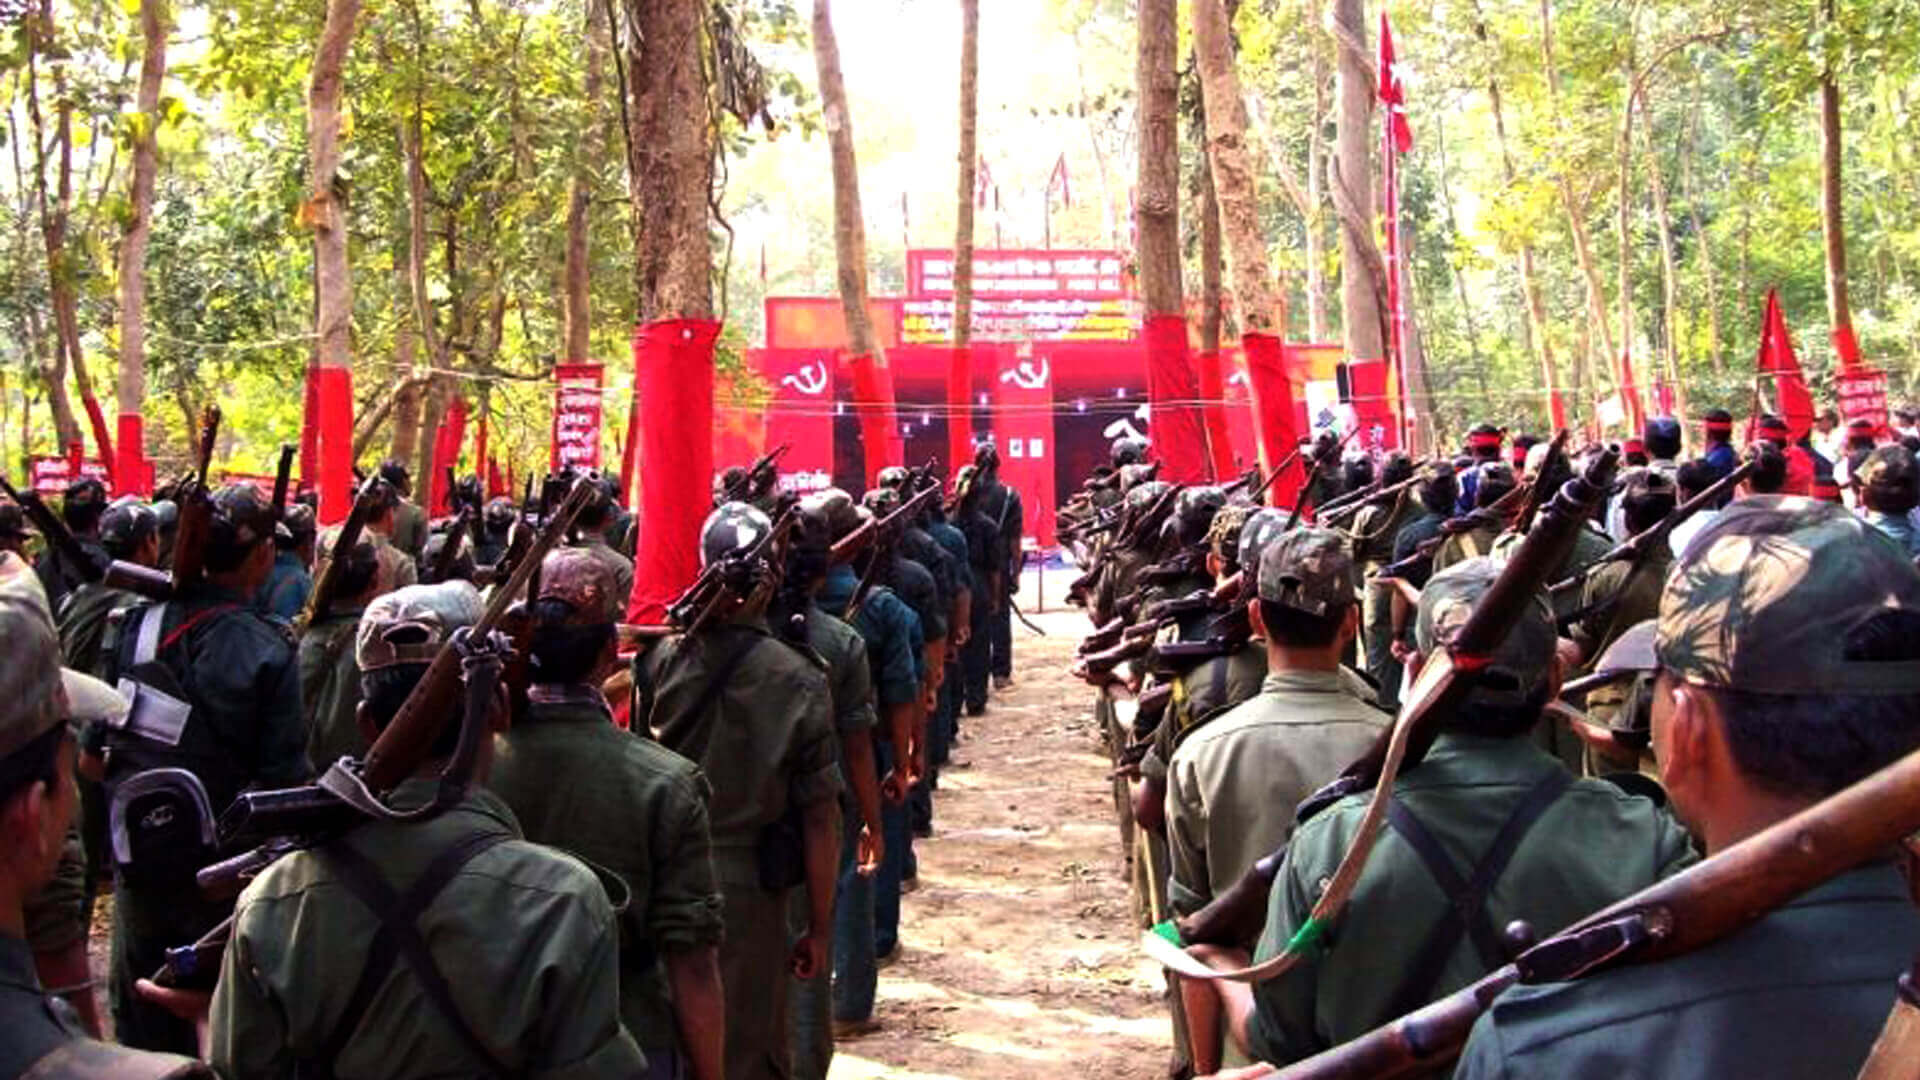 Maoists and Naxalites: A Threat to Indian Democracy